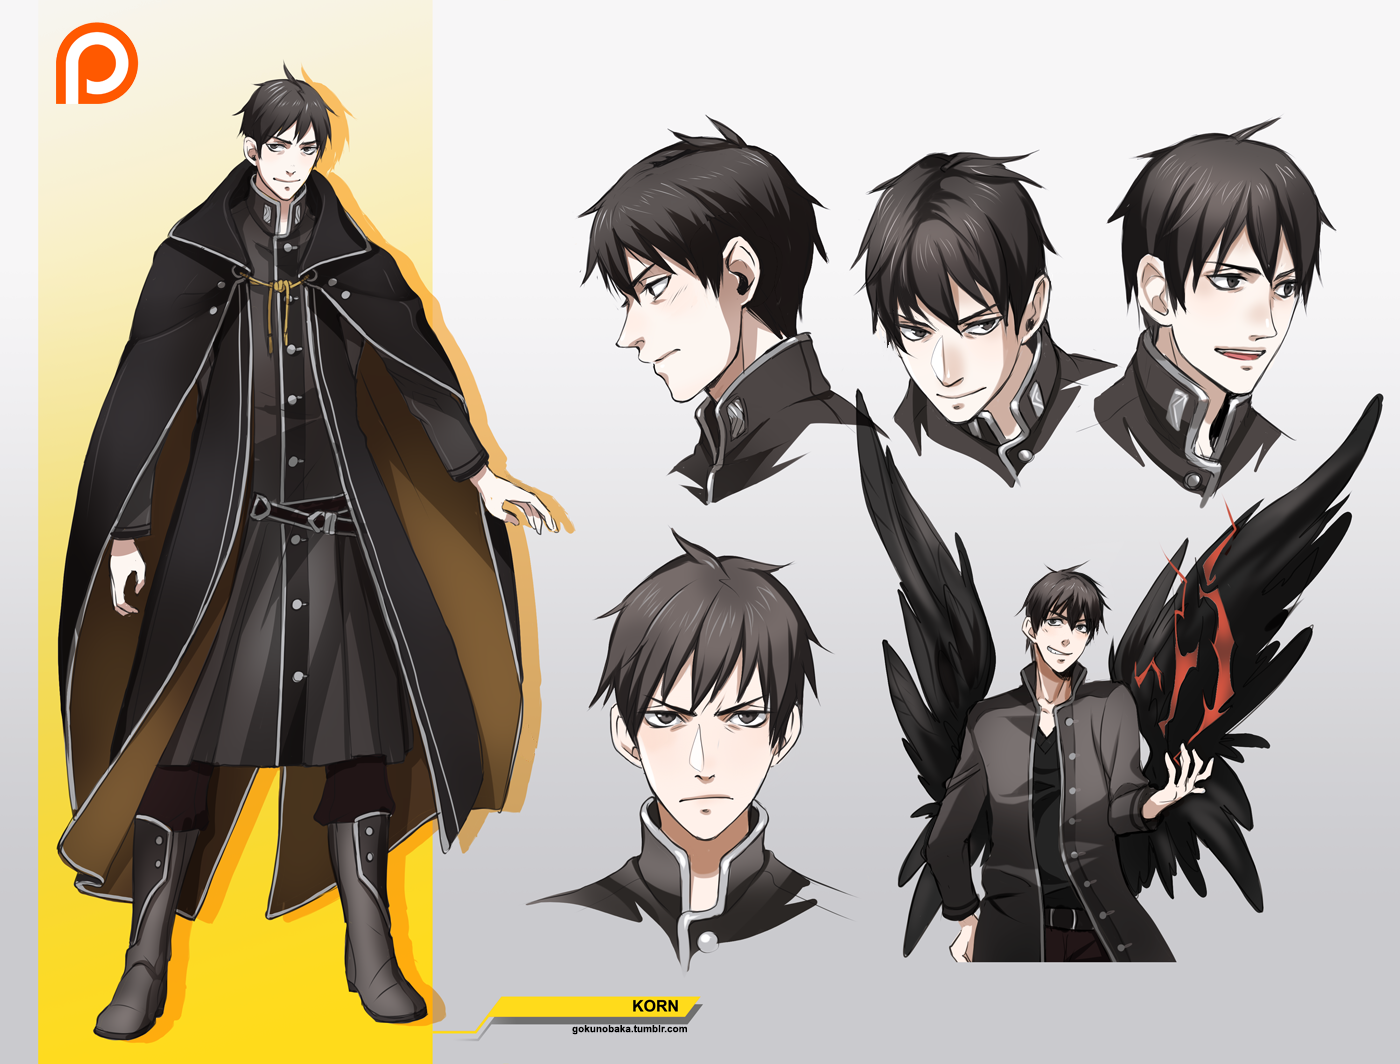 Anime Boy Character Design : Anime male character sheet pixshark images